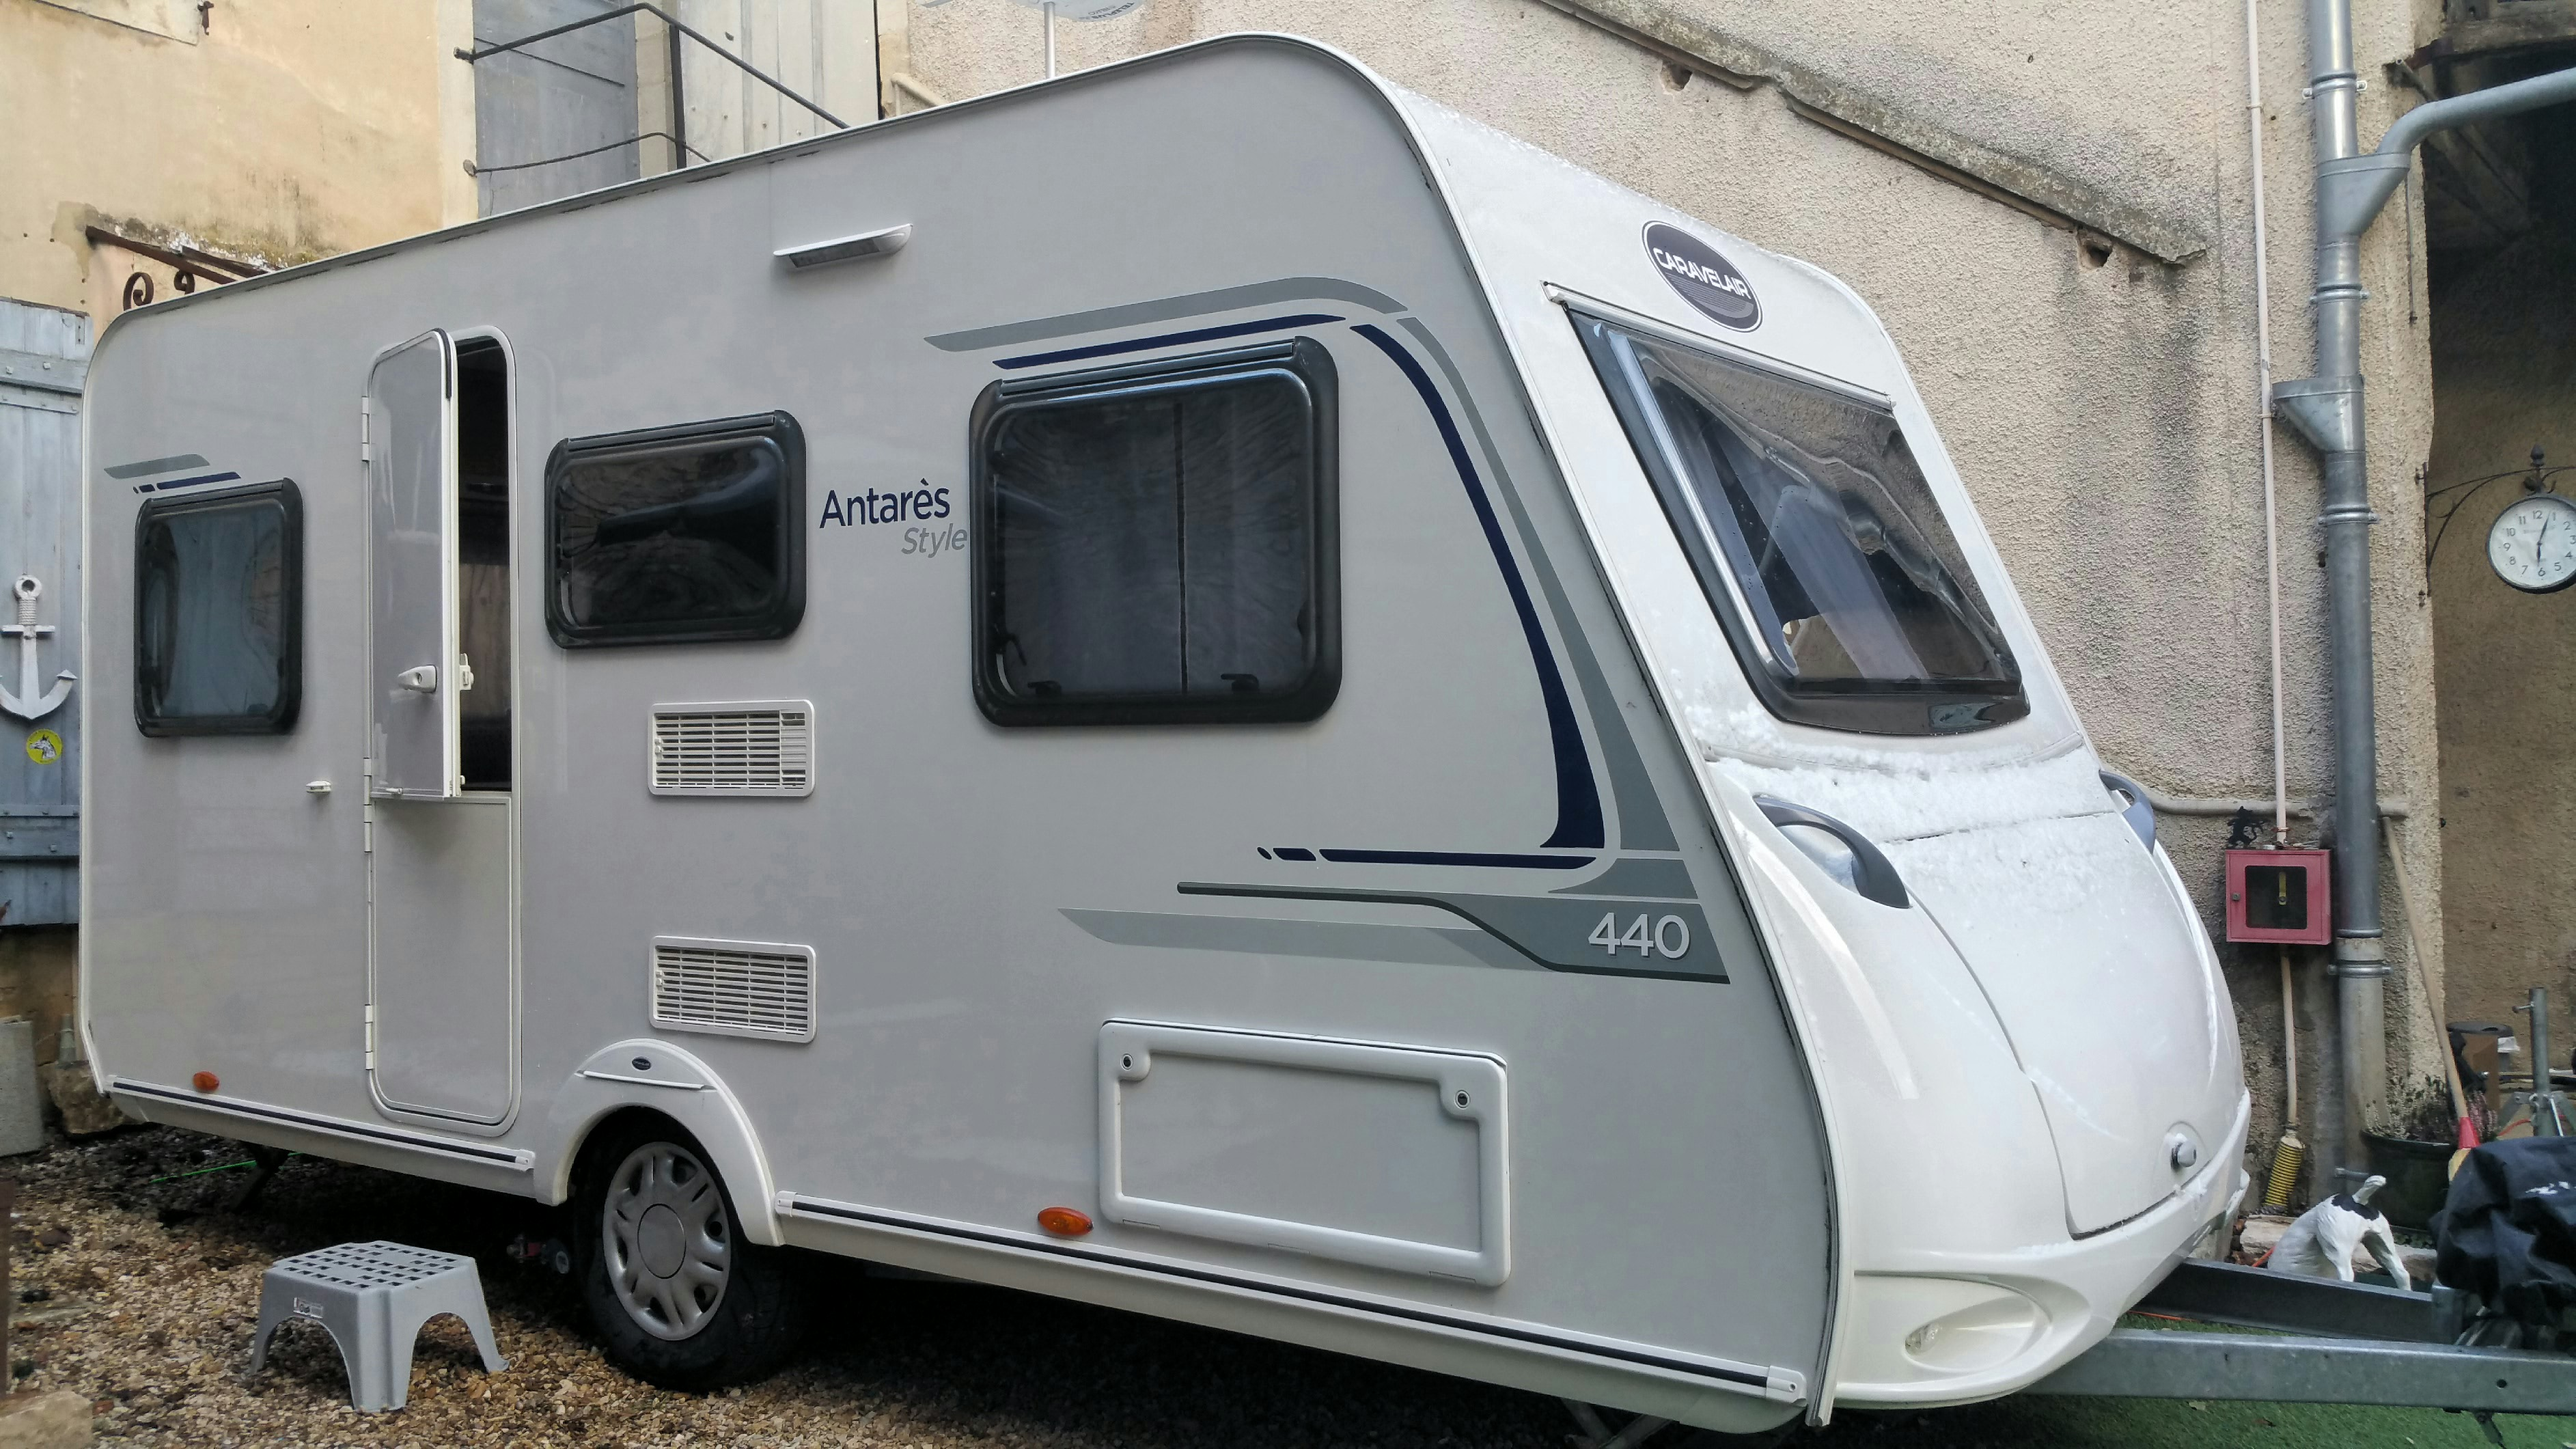 Caravane occasion Caravelair Antares style 440